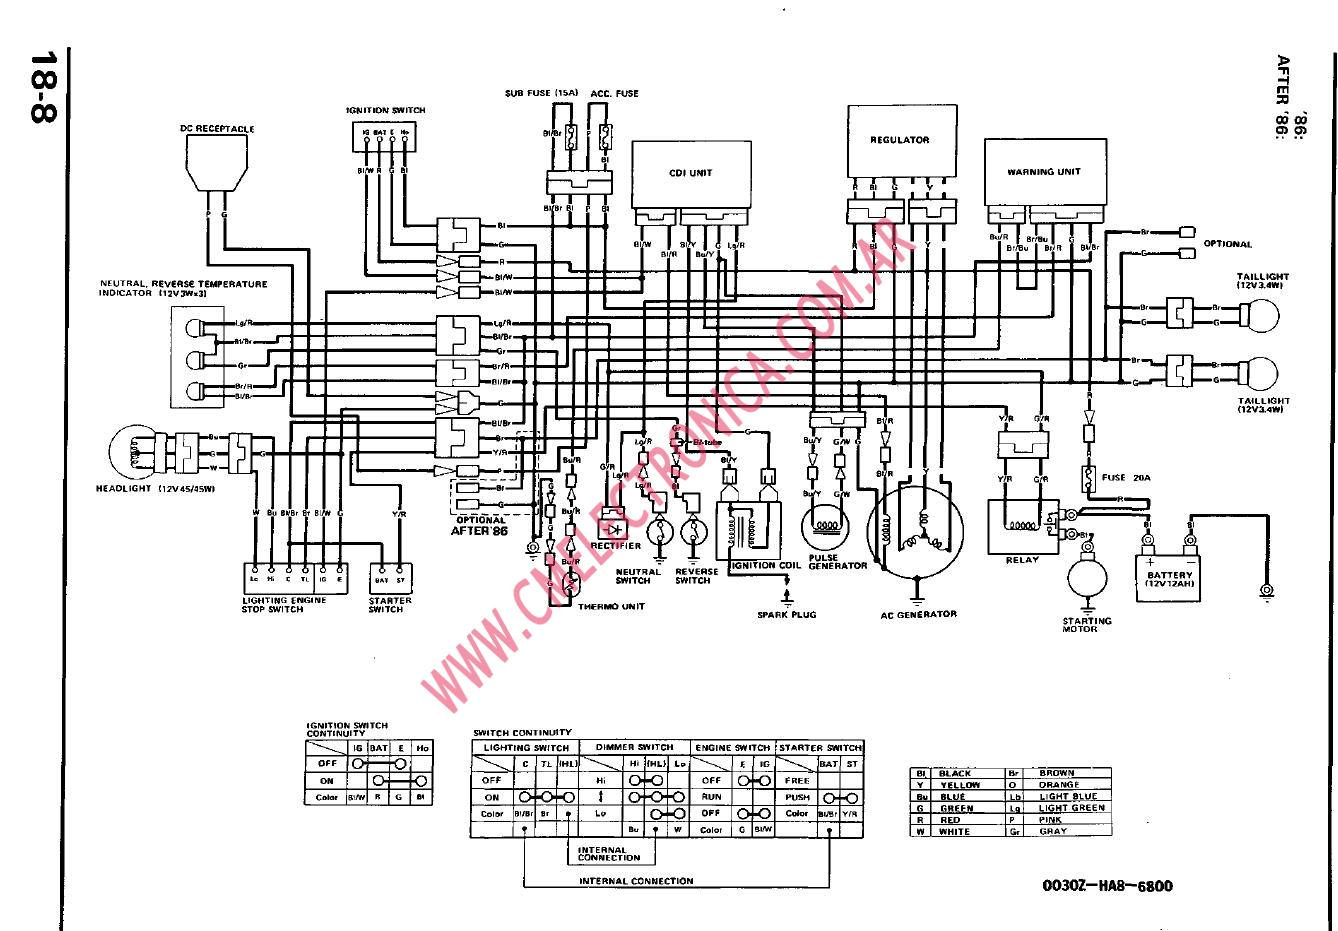 Attractive Wire Two Lights To One Switch Component - Wiring Diagram ...